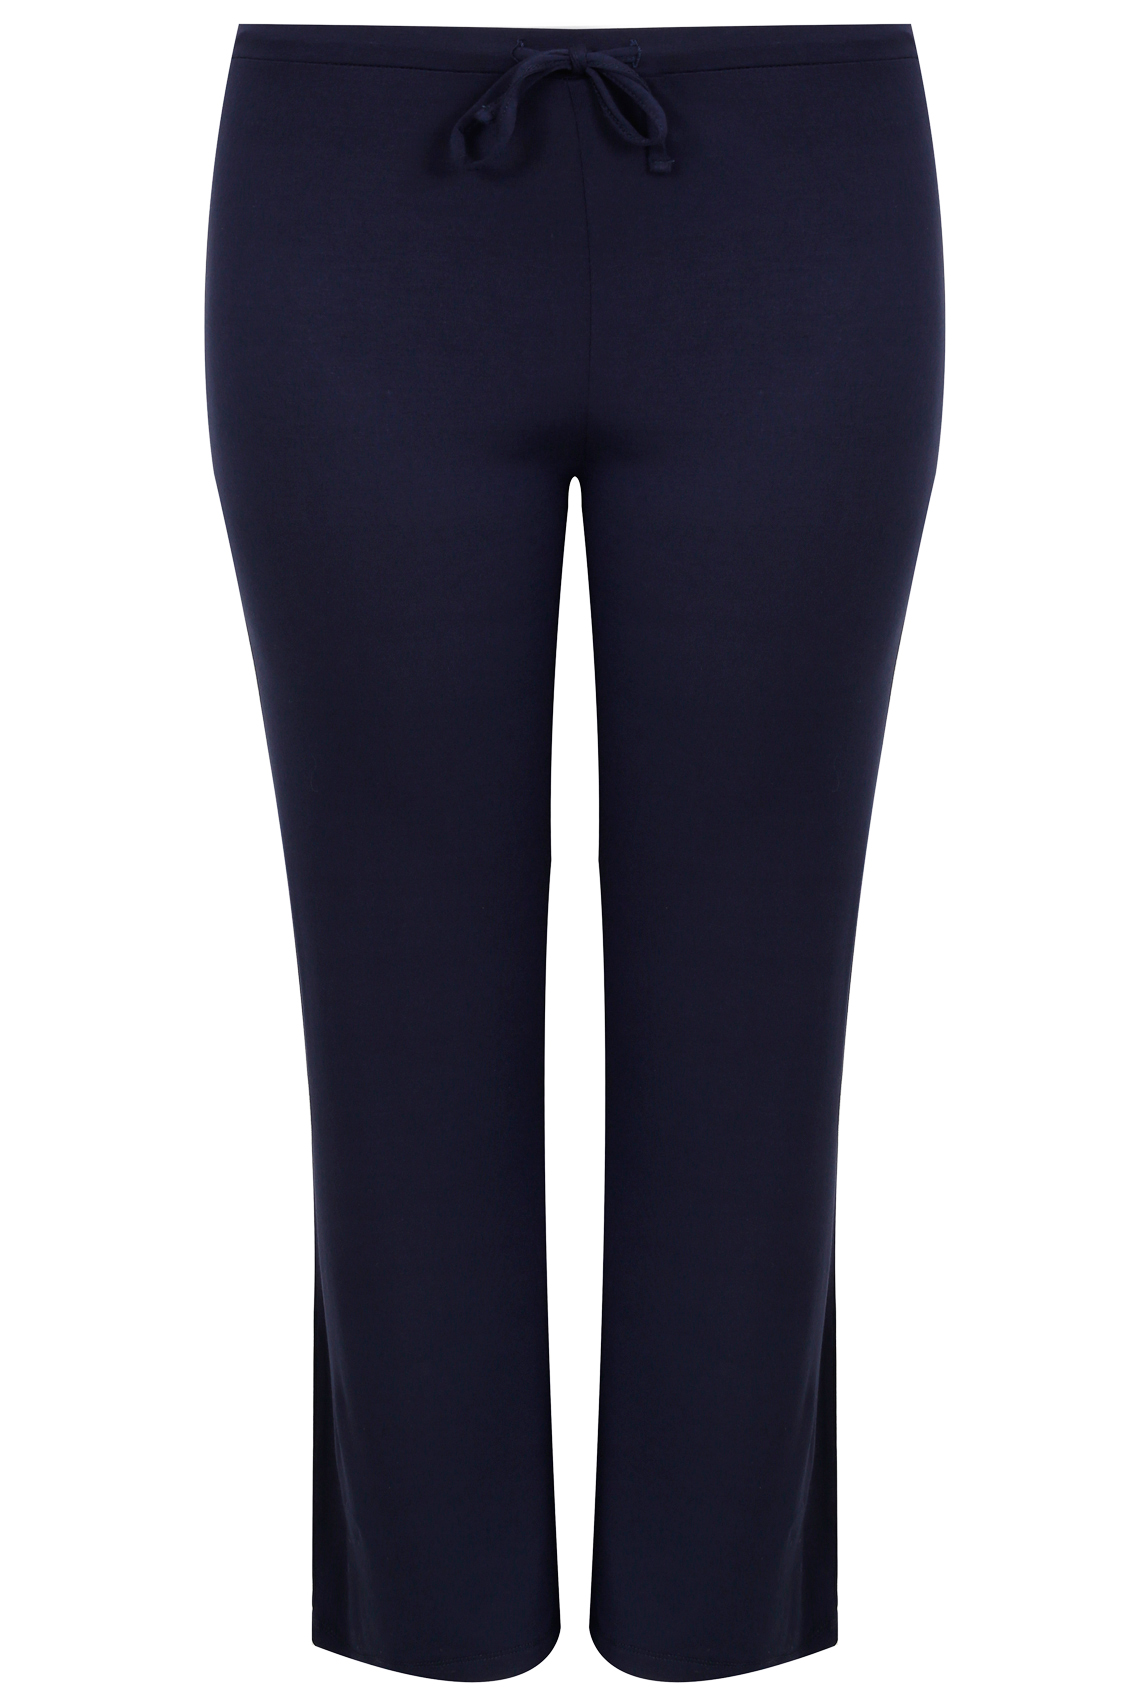 Navy Wide Leg Pull On Stretch Jersey Yoga Trousers Plus Size 16 To 36-1774